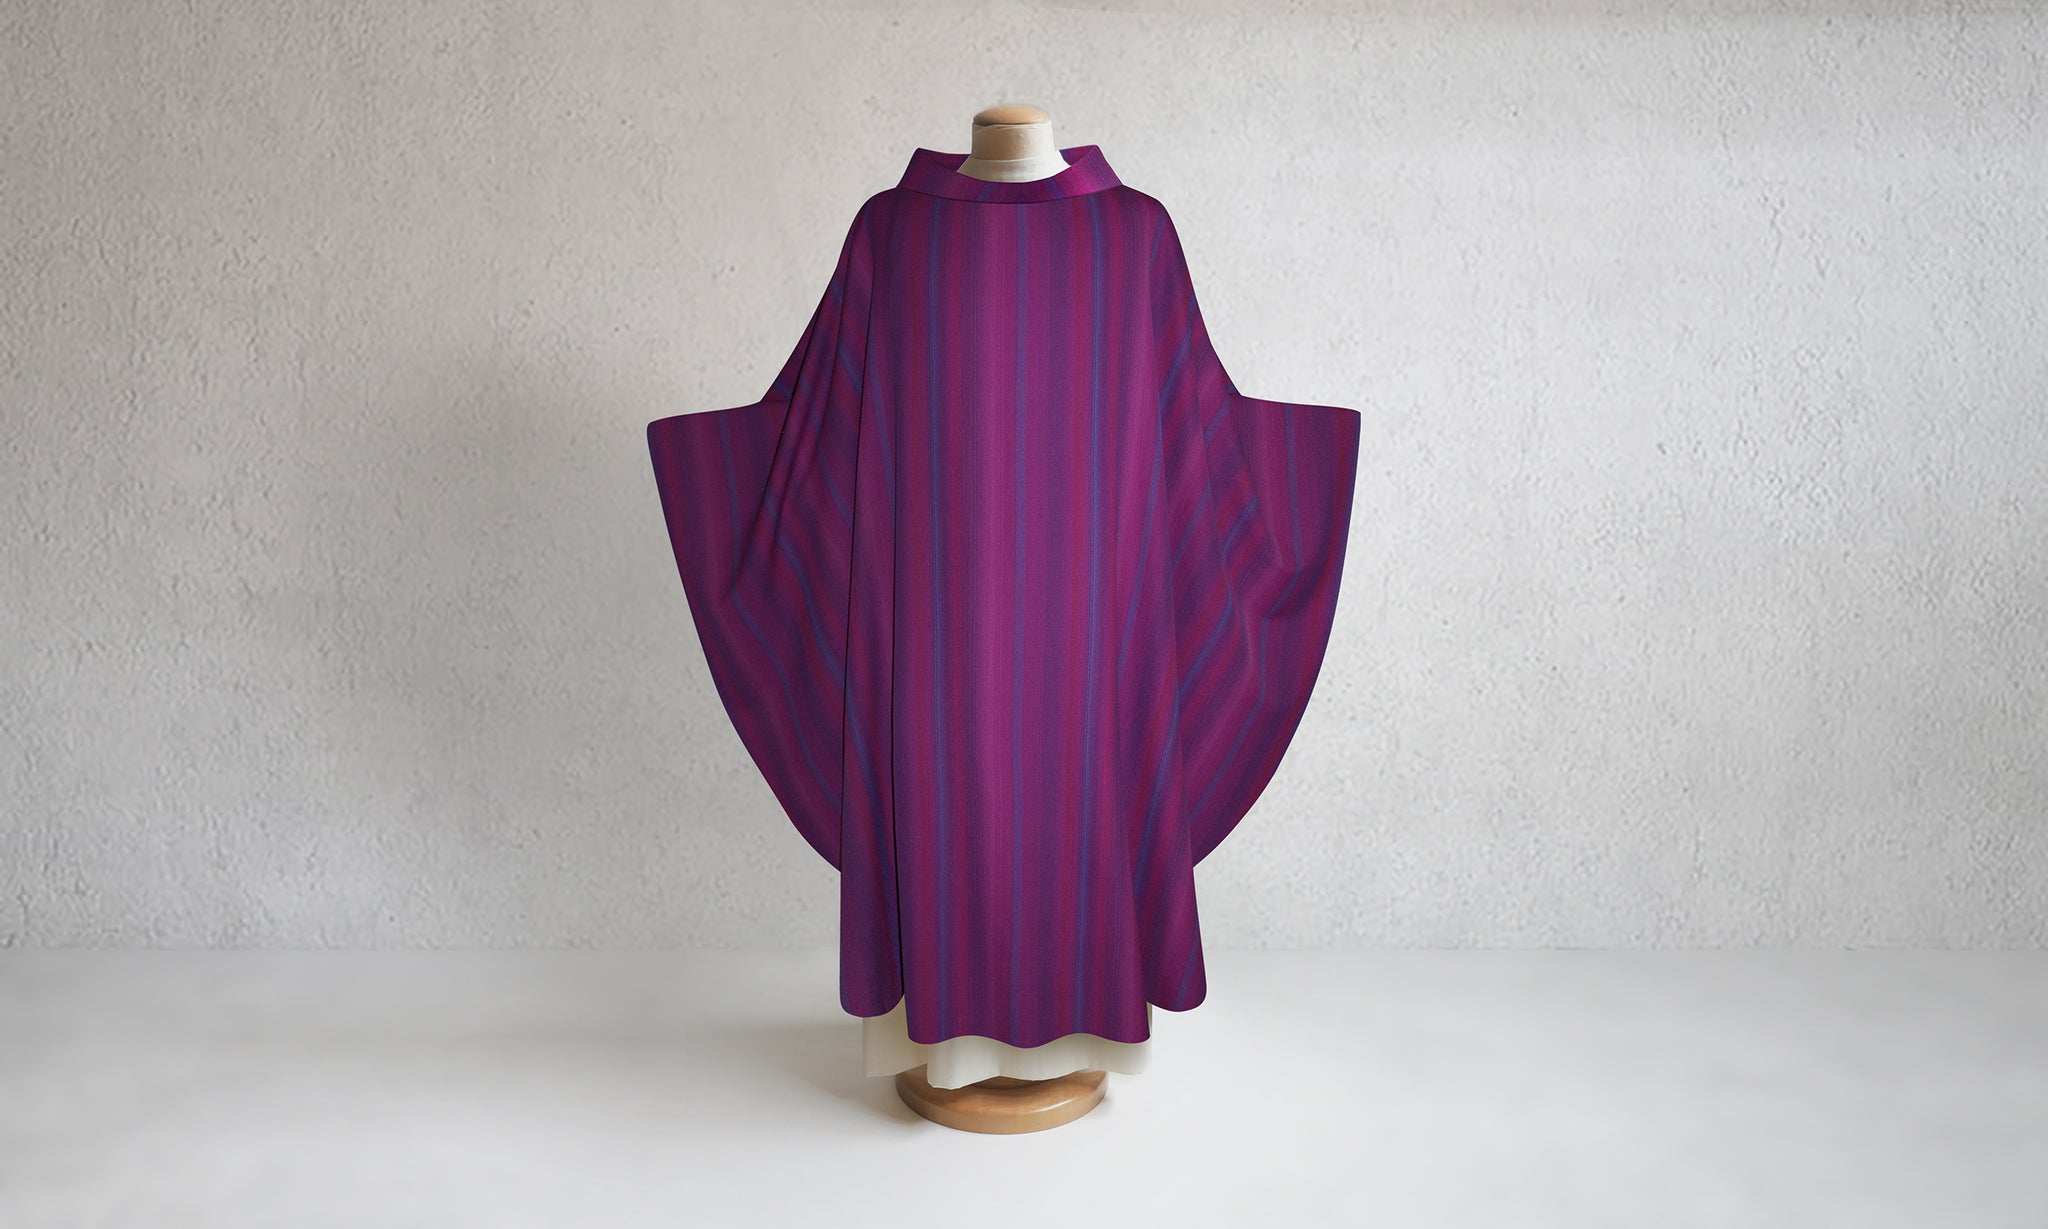 Mystique Woven Chasuble in Purple